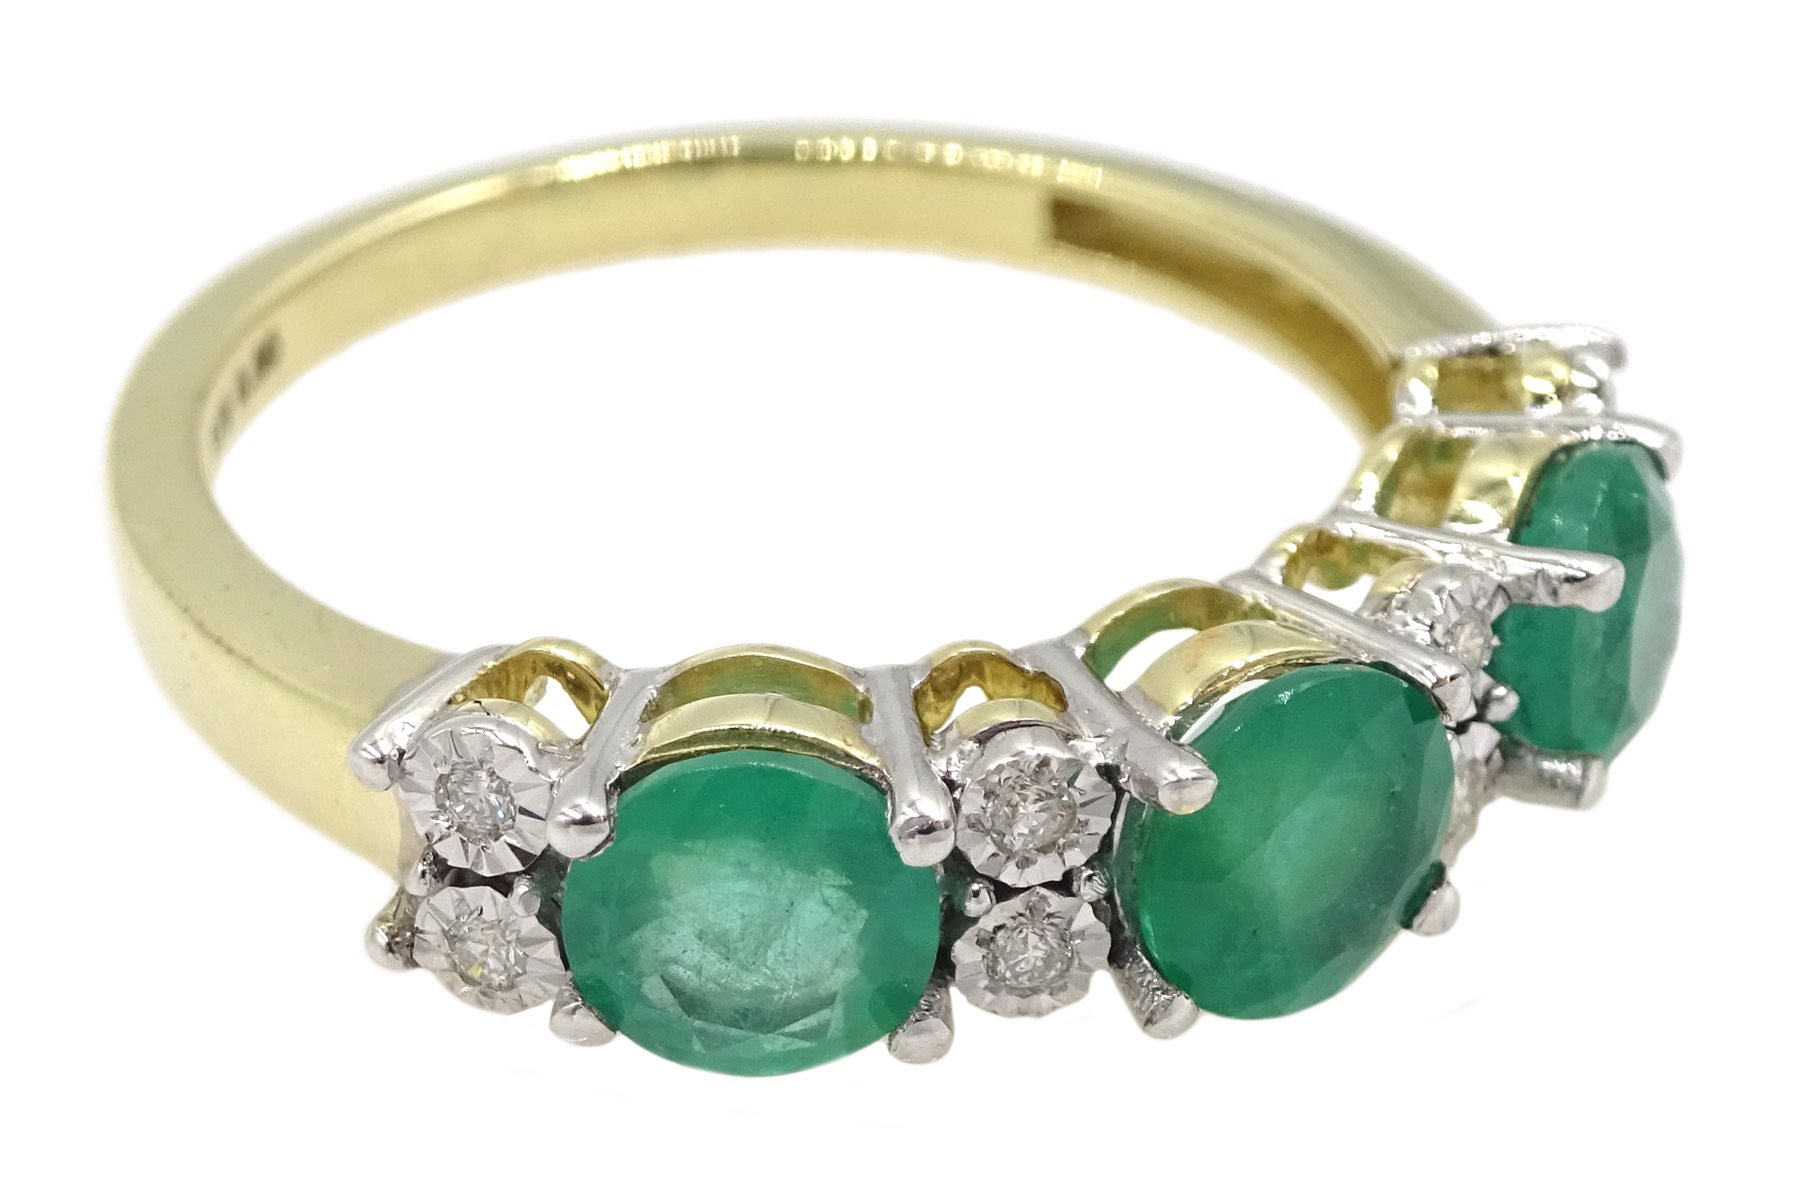 9ct gold round emerald and diamond ring, stamped 375, total emerald weight approx 1.30 carat - Image 3 of 4